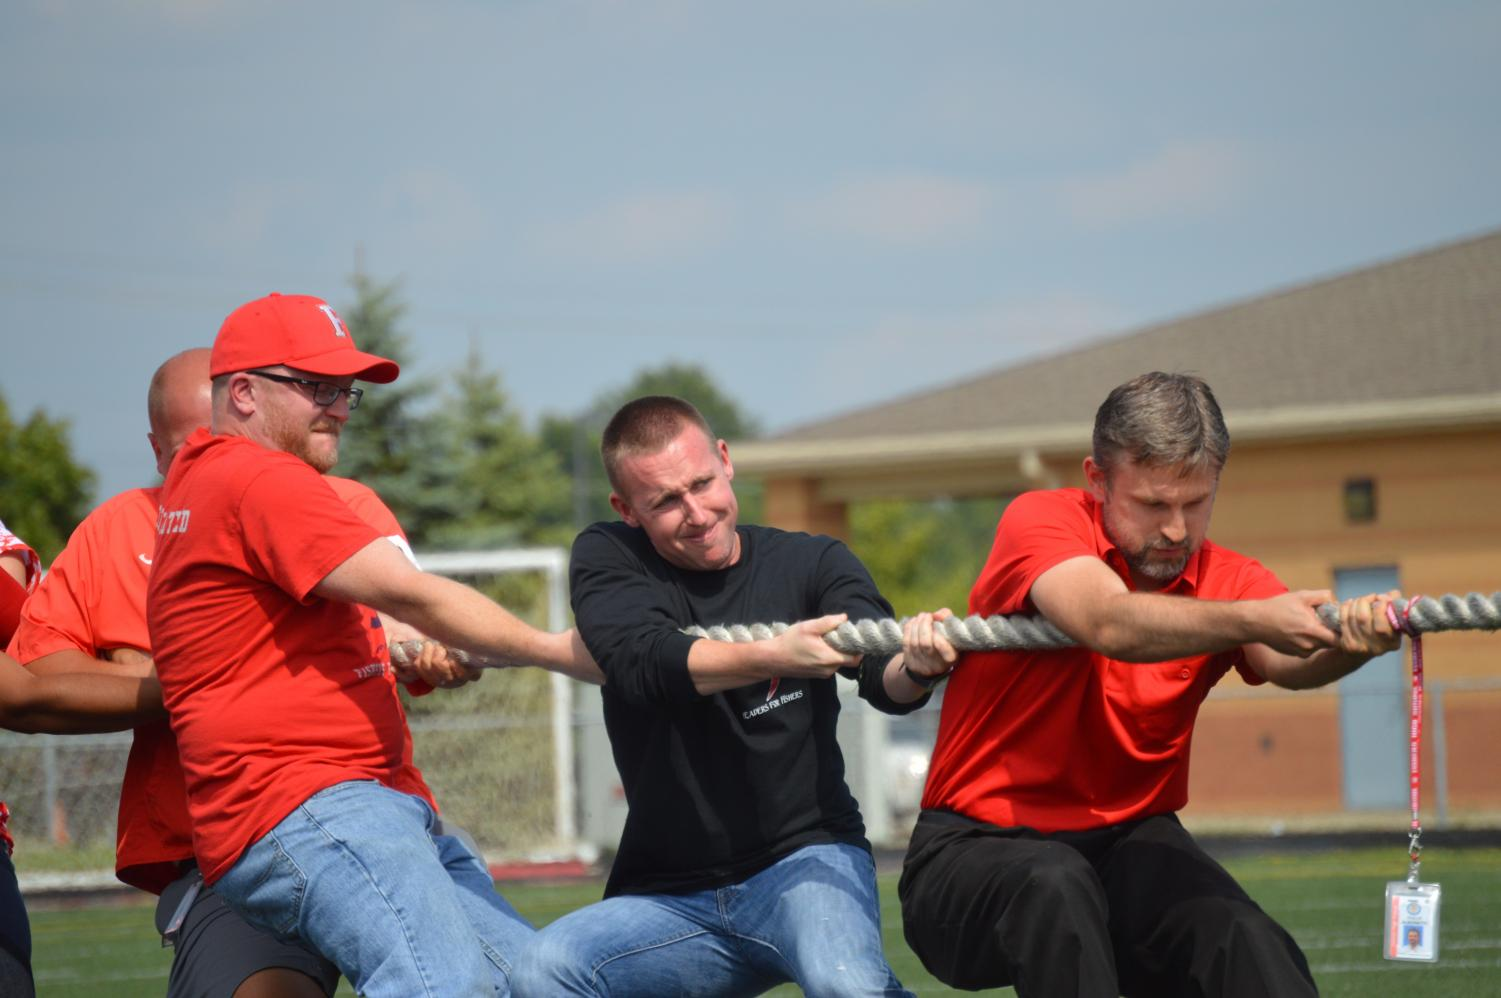 Assistant principal Kyle Goodwin, who was an English teacher at the time, fights to win the classic tug-of-war against his colleagues in the 2016 Homecoming Pep Rally.